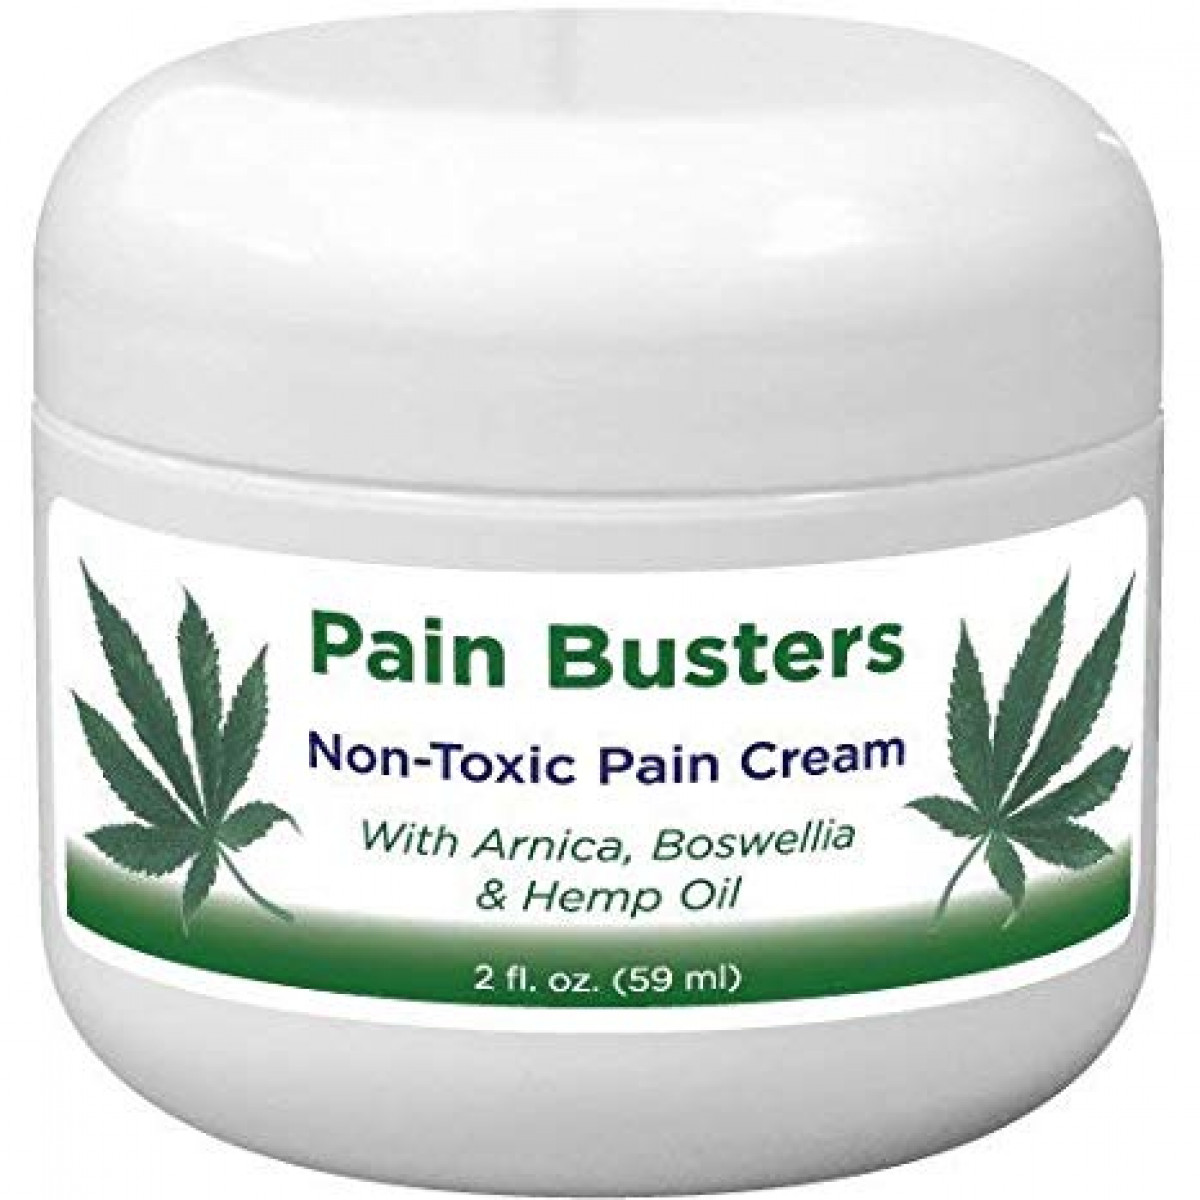 Pain Busters Arnica, MSM and Hemp Oil Pain Relief Cream